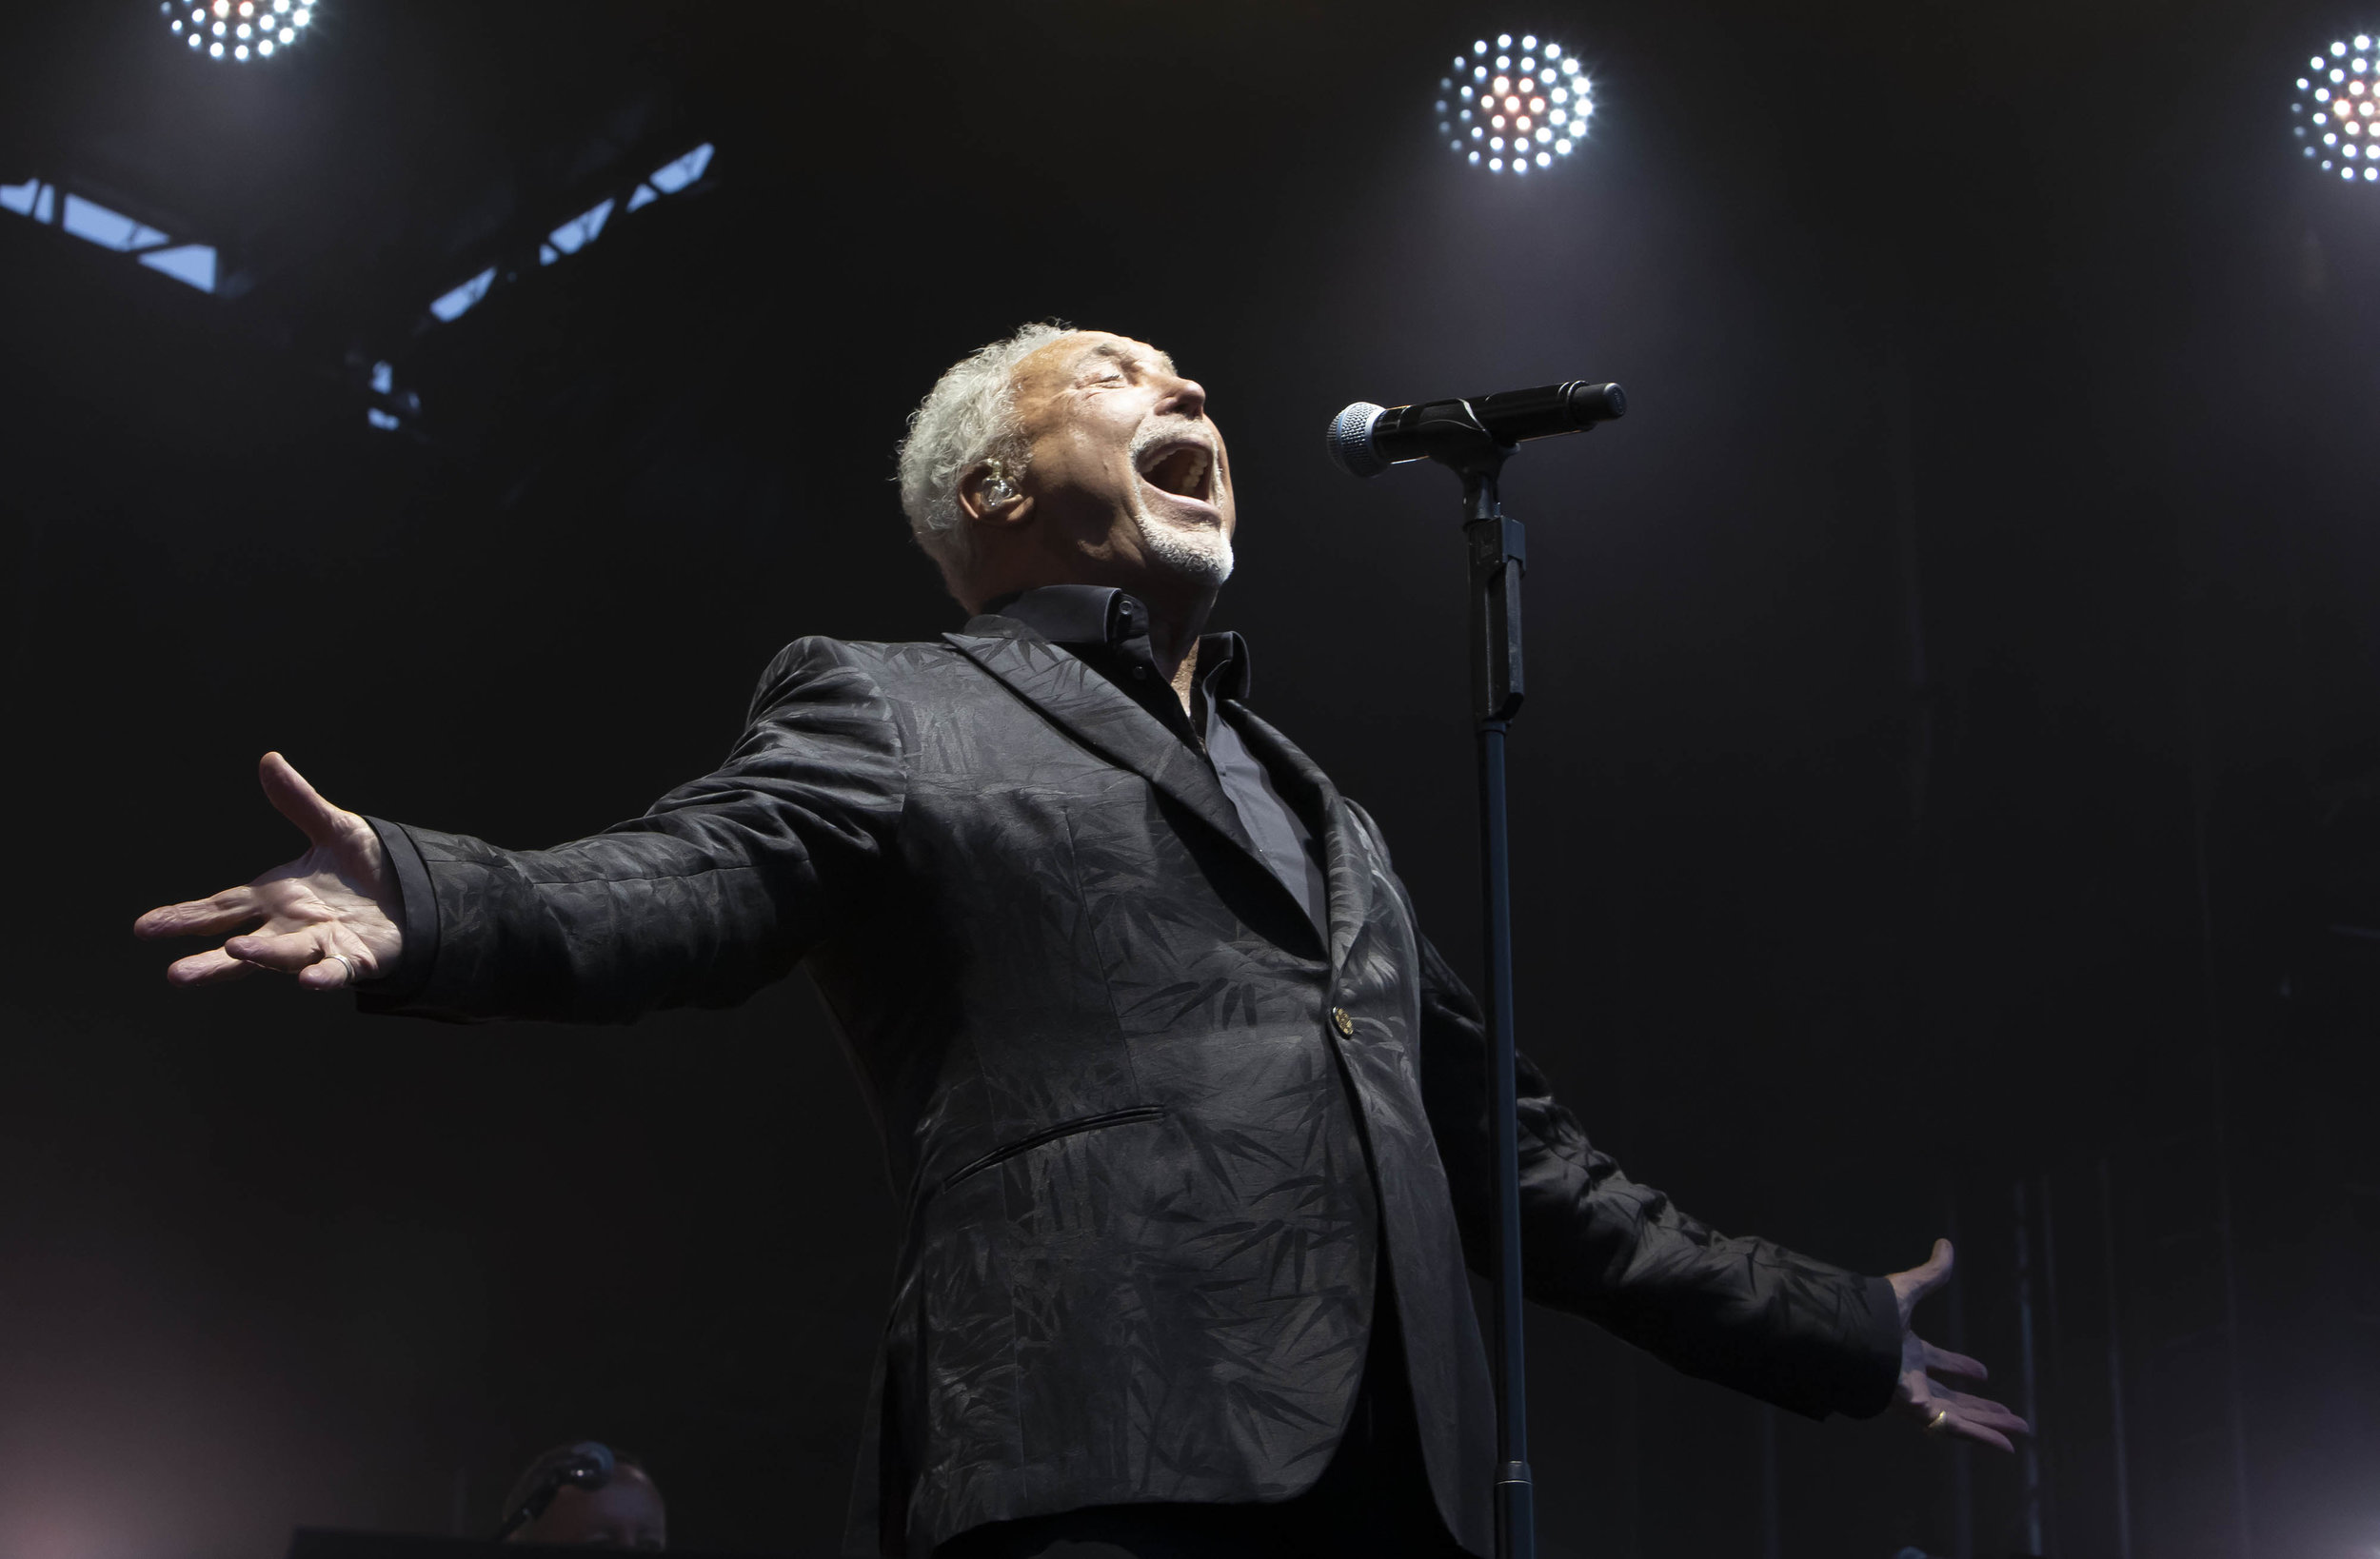 tom jones_006  - Copy.jpg